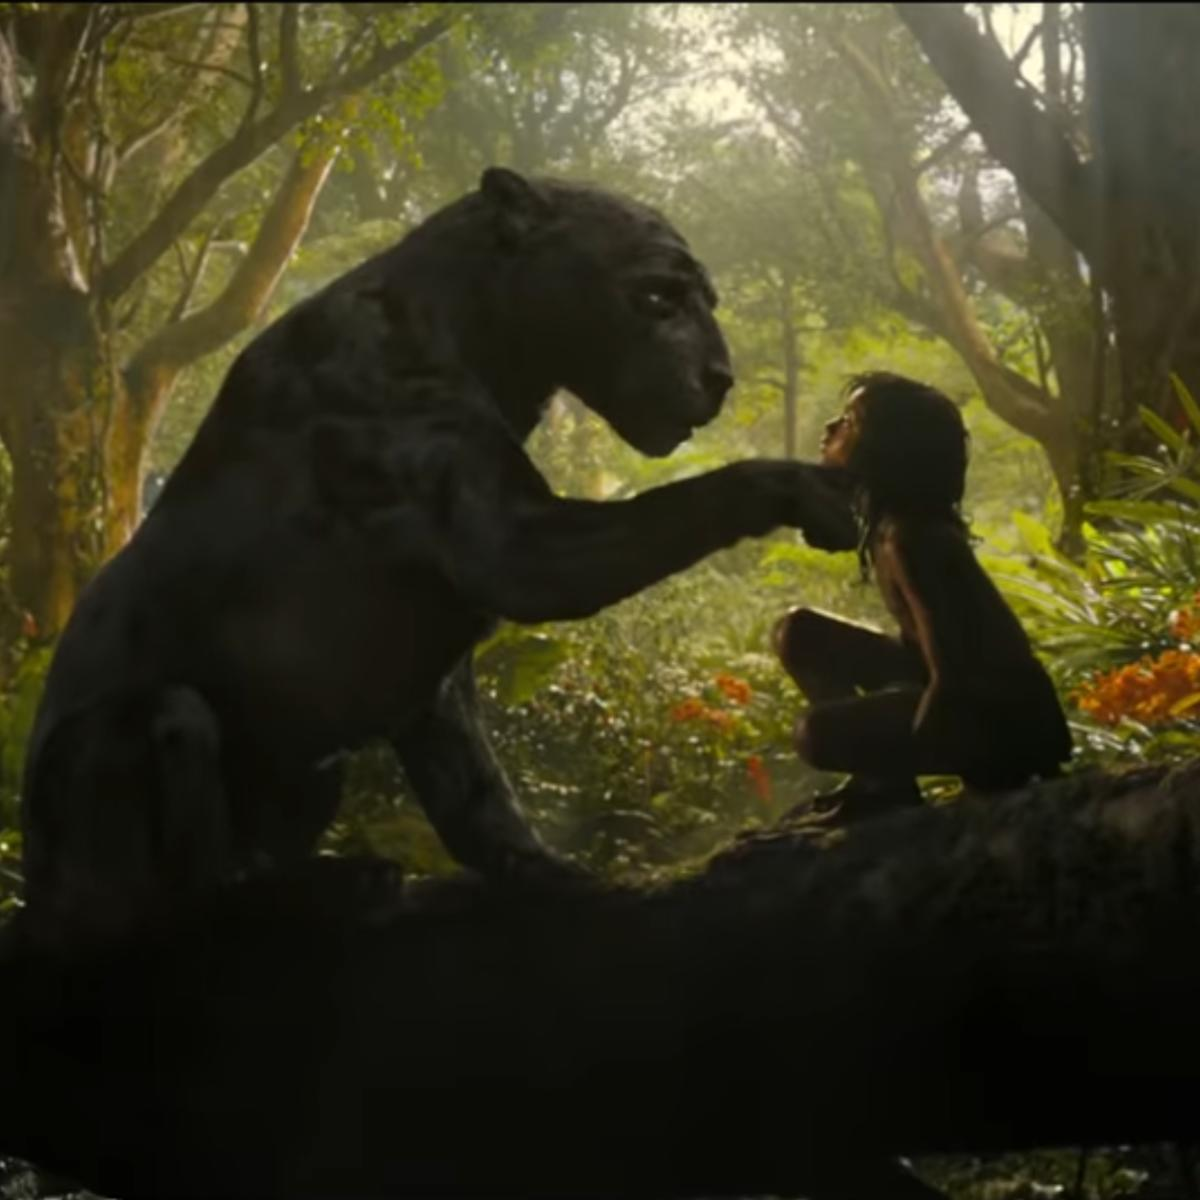 New take on The Jungle Book: Sneak peek of film revealed